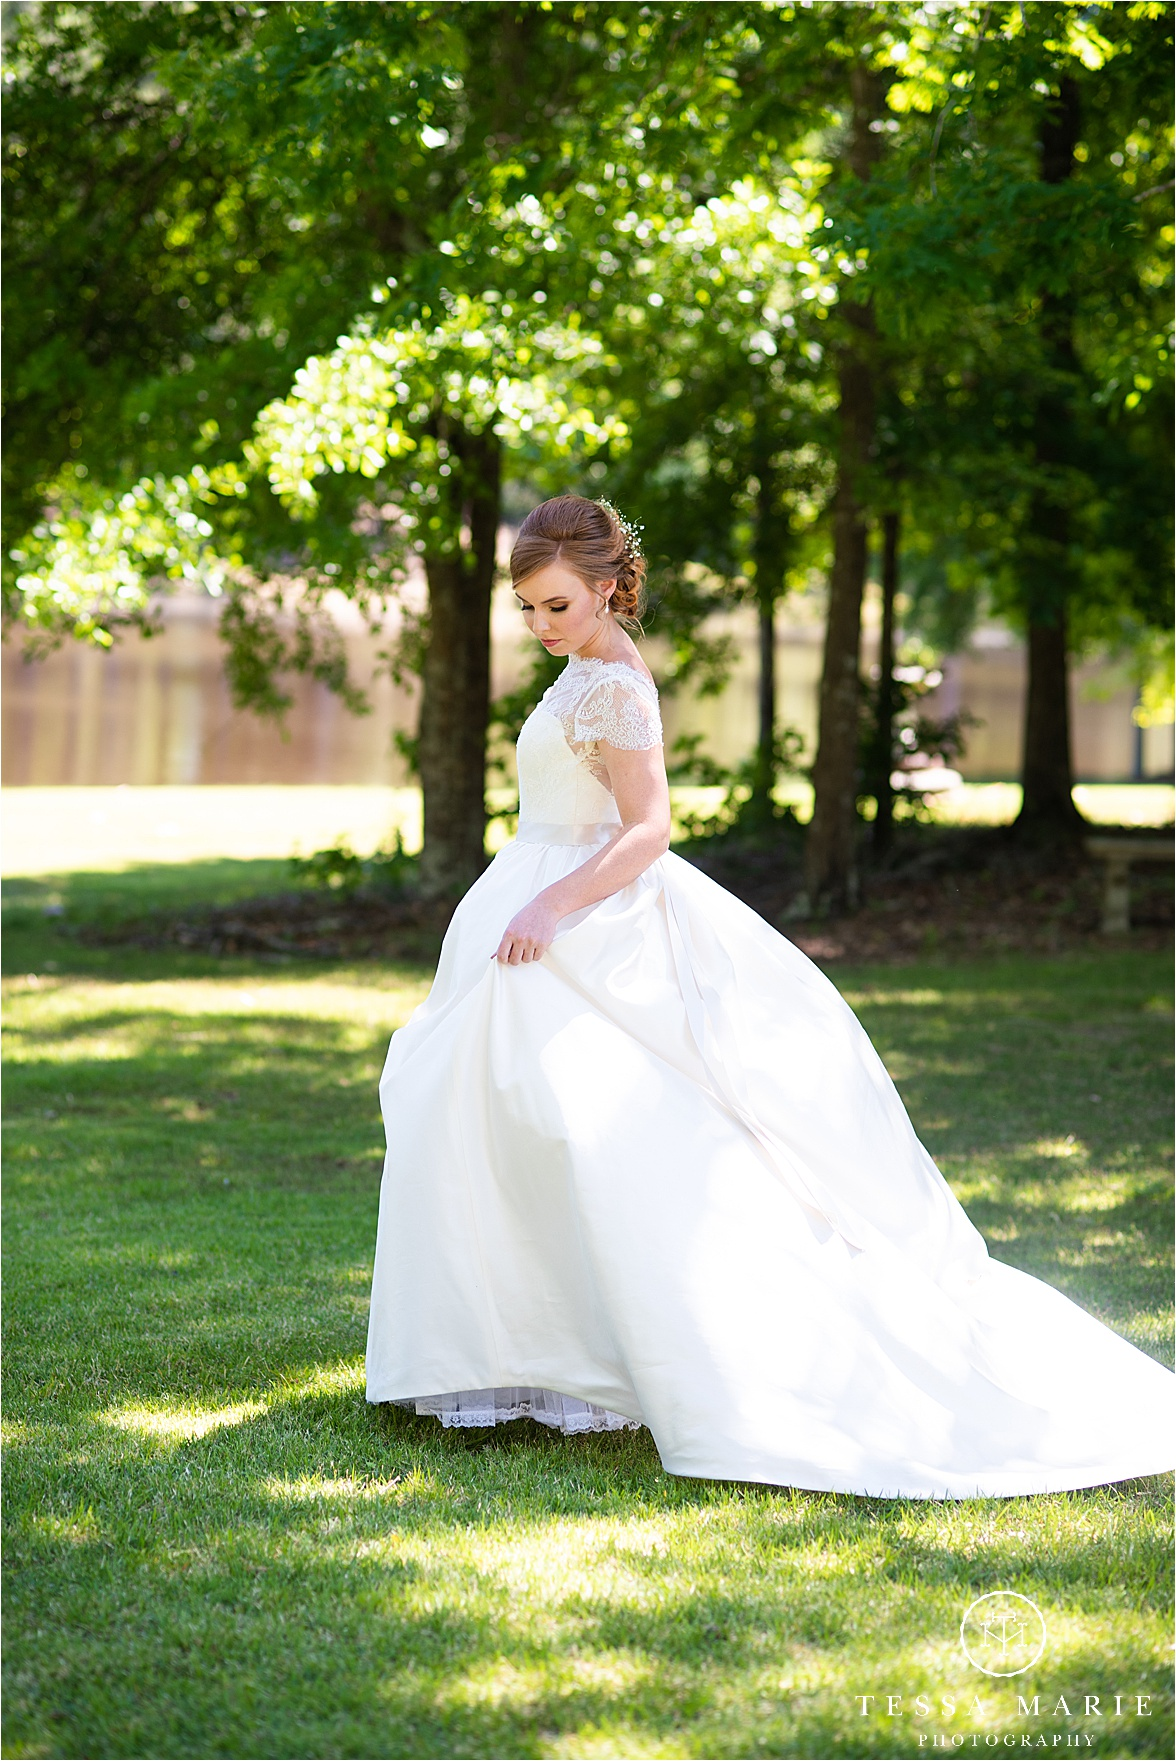 Tessa_marie_weddings_columbus_wedding_photographer_wedding_day_spring_outdoor_wedding_0031.jpg